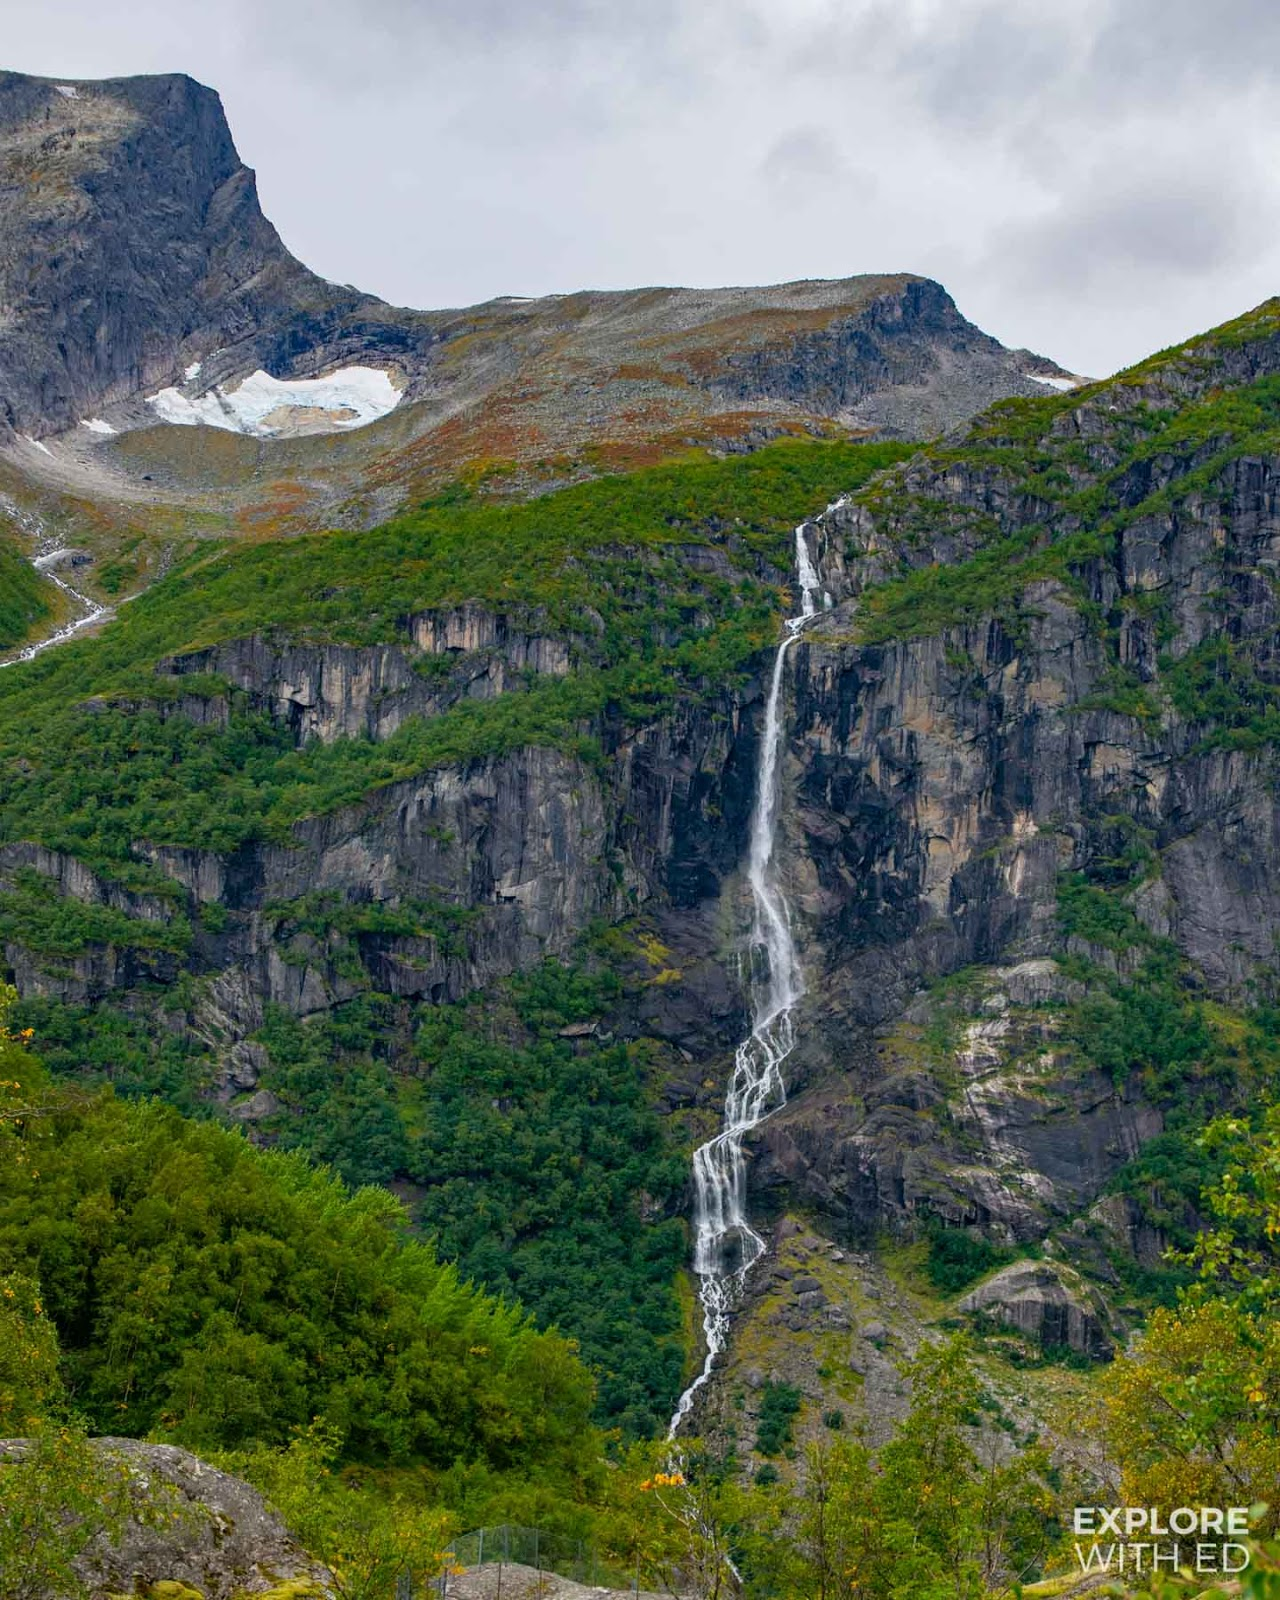 The Jurassic landscape of Jostedalsbreen National Park near Briksdal Glacier